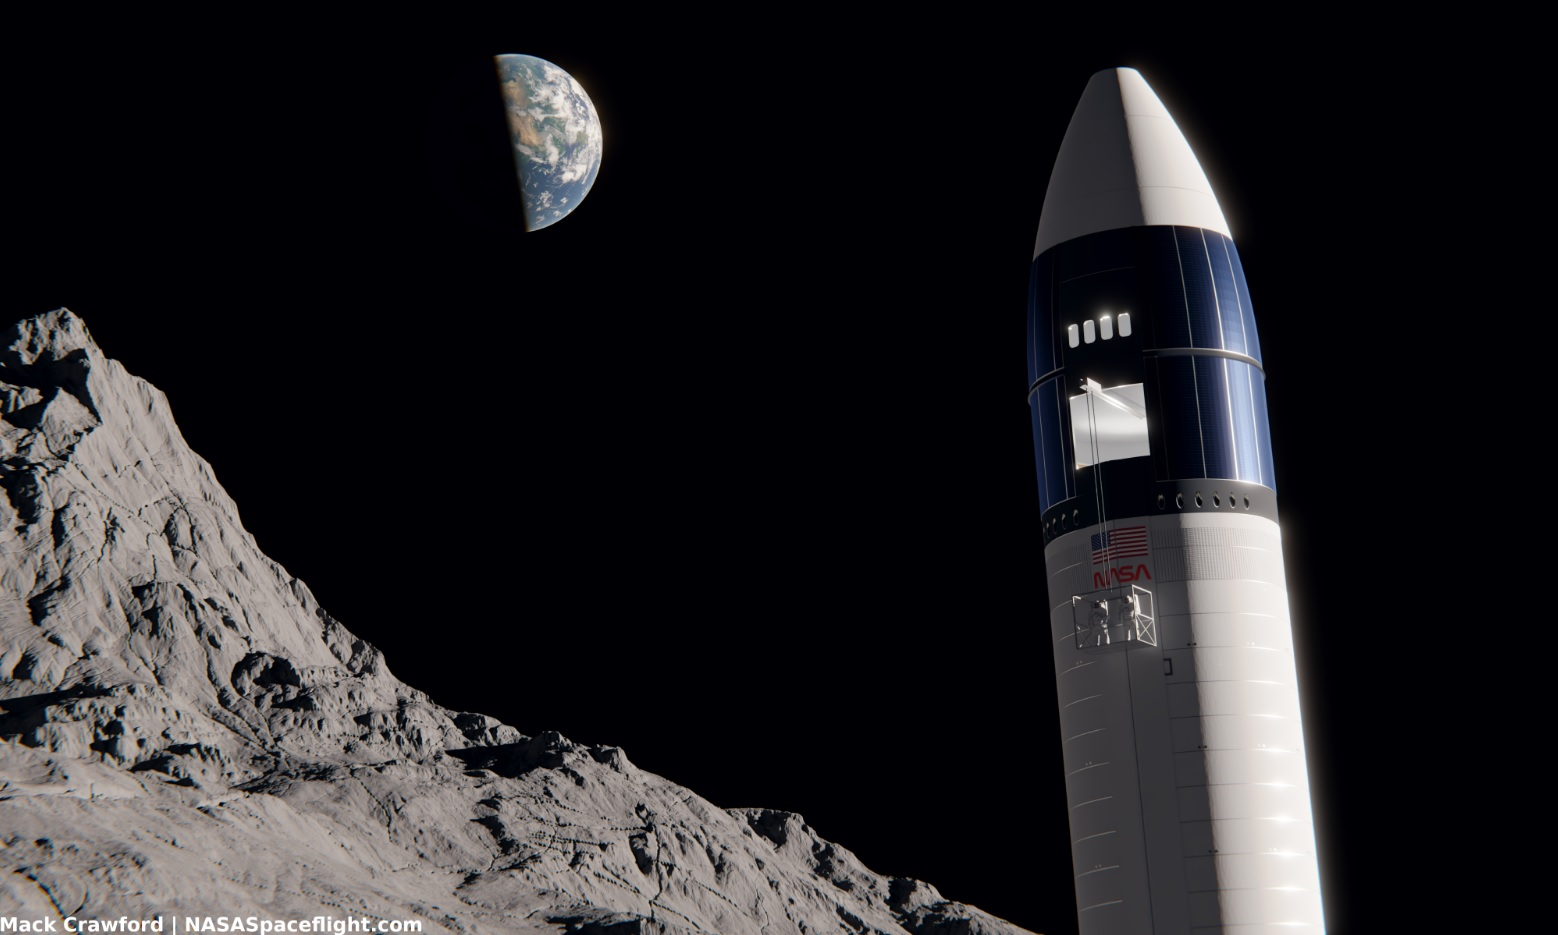 Elon Musk claims SpaceX could launch a Starship to the moon 'probably sooner' than 2024